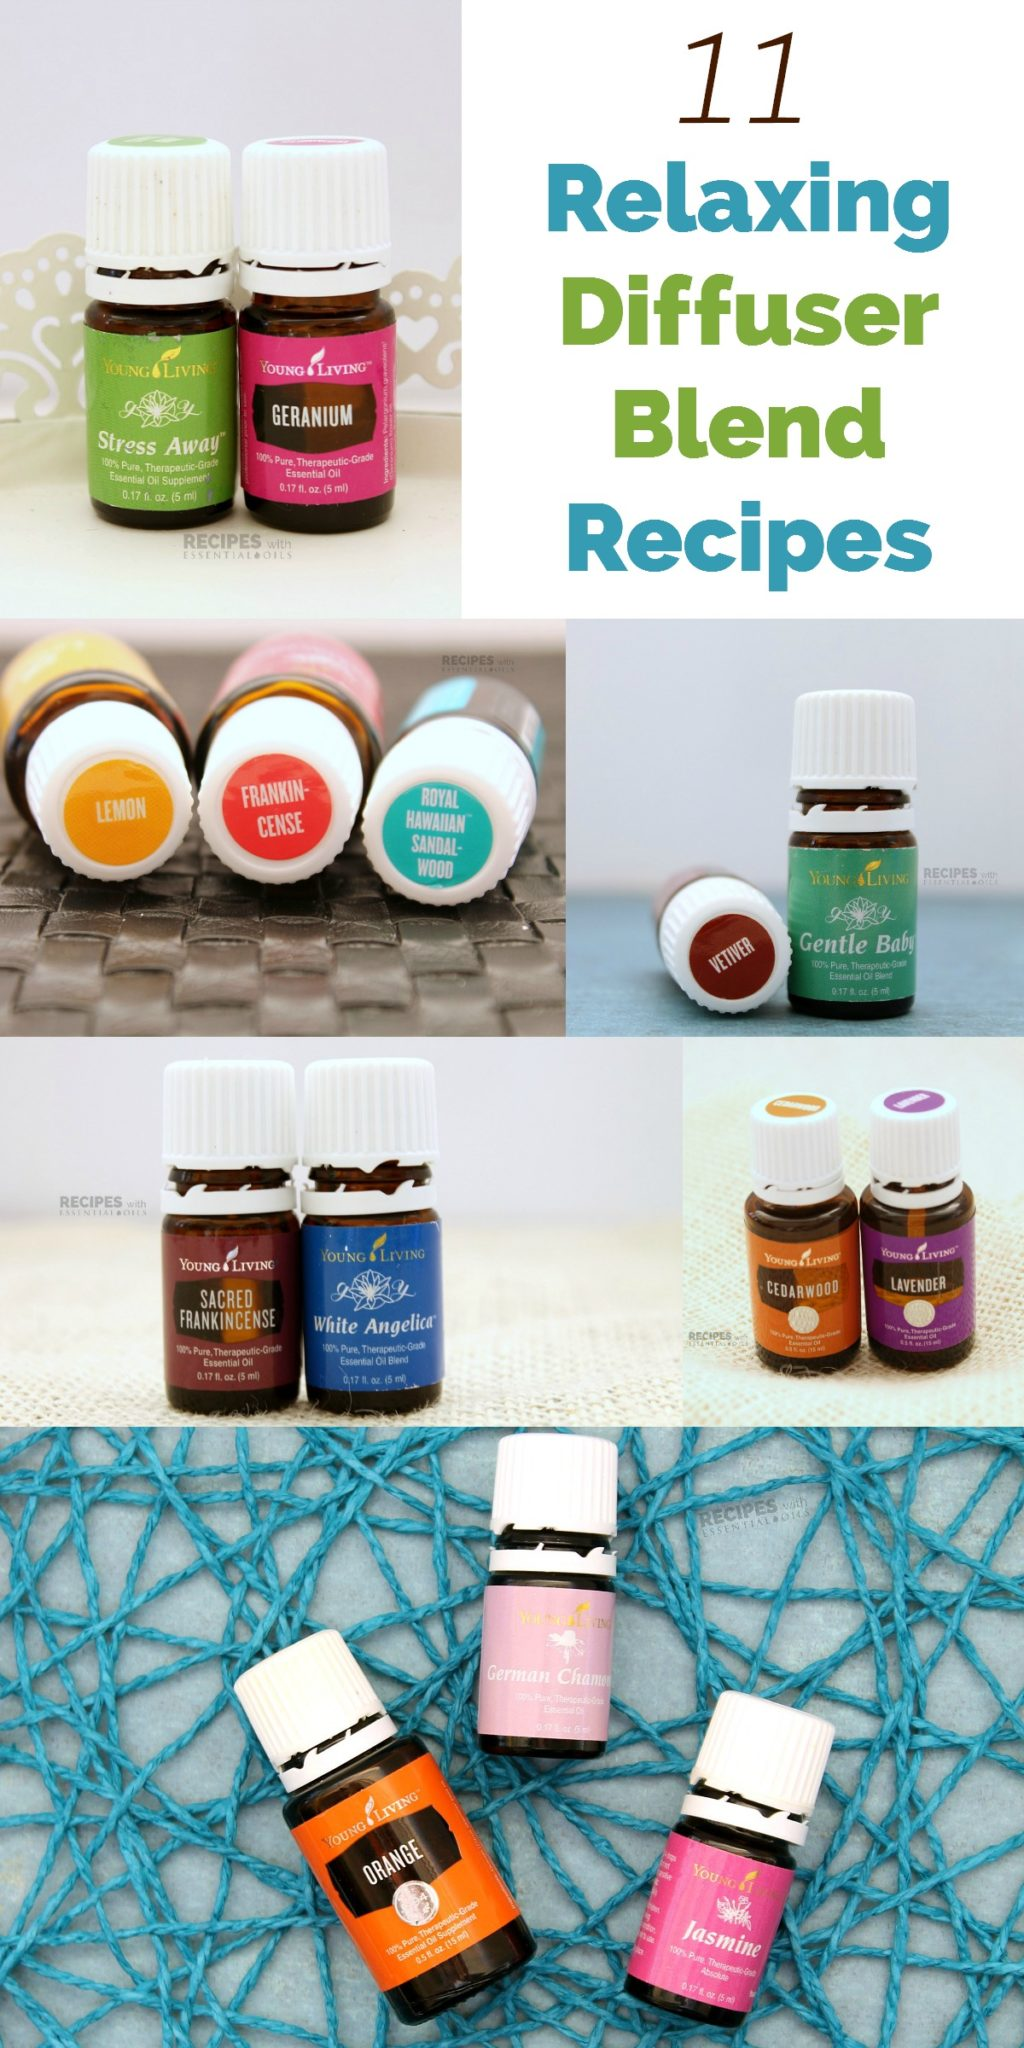 11 Relaxing Diffuser Blend Recipes from RecipeswithEssentialOils.com